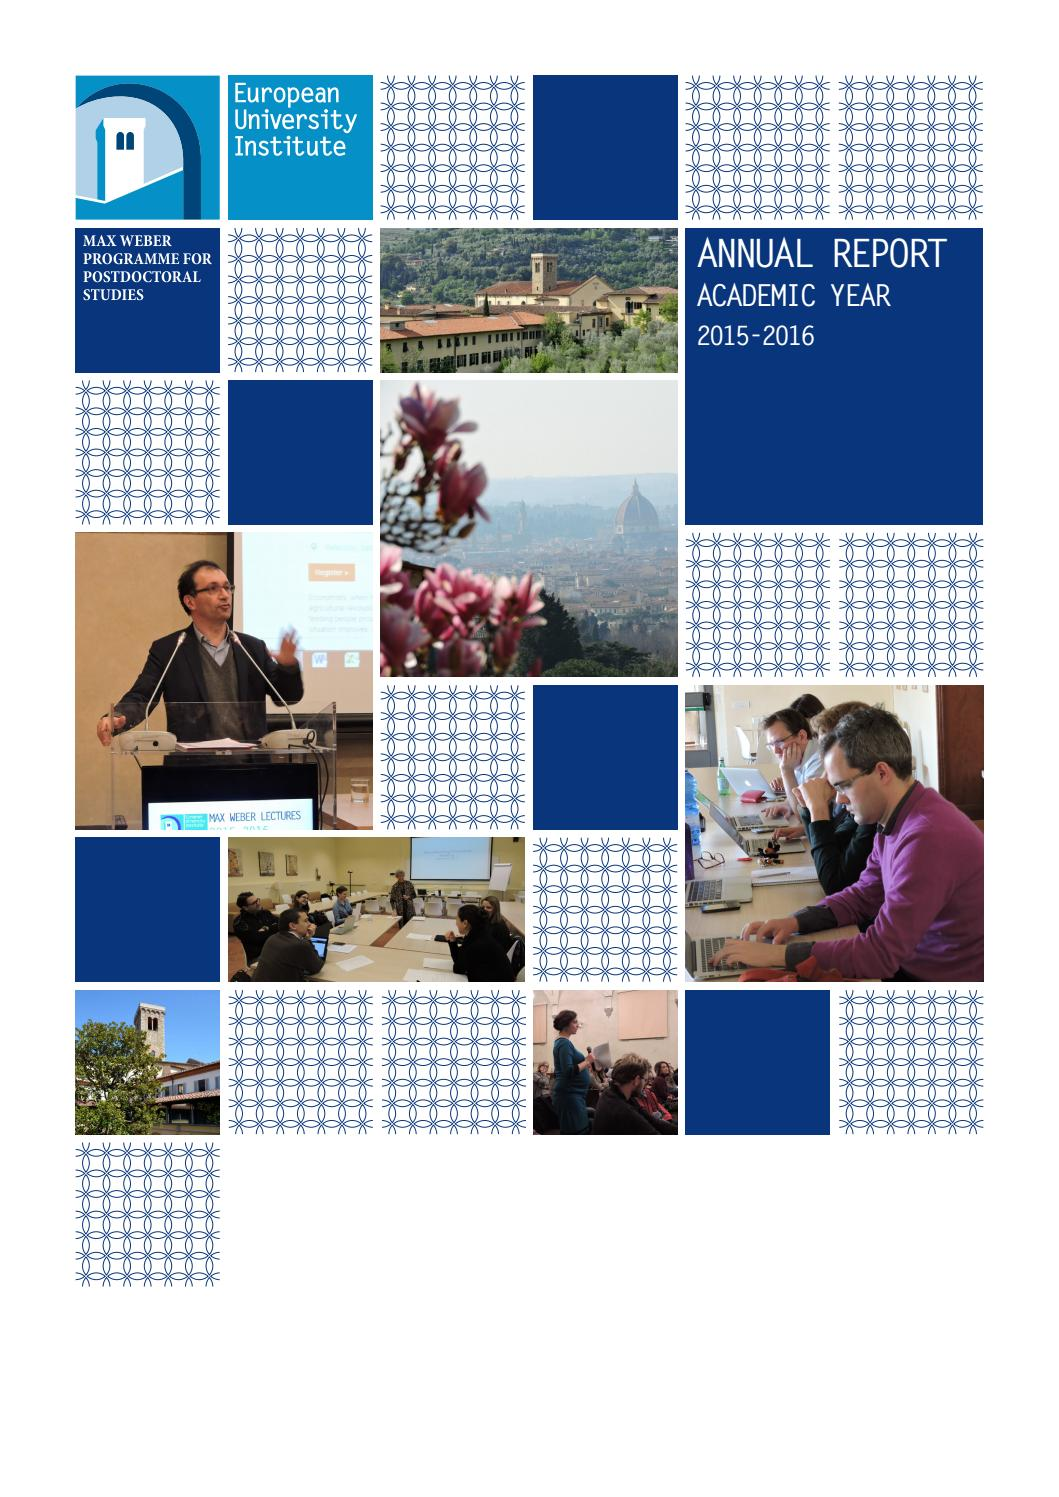 Max Weber Programme Annual Report on 2015/16 by European University ...